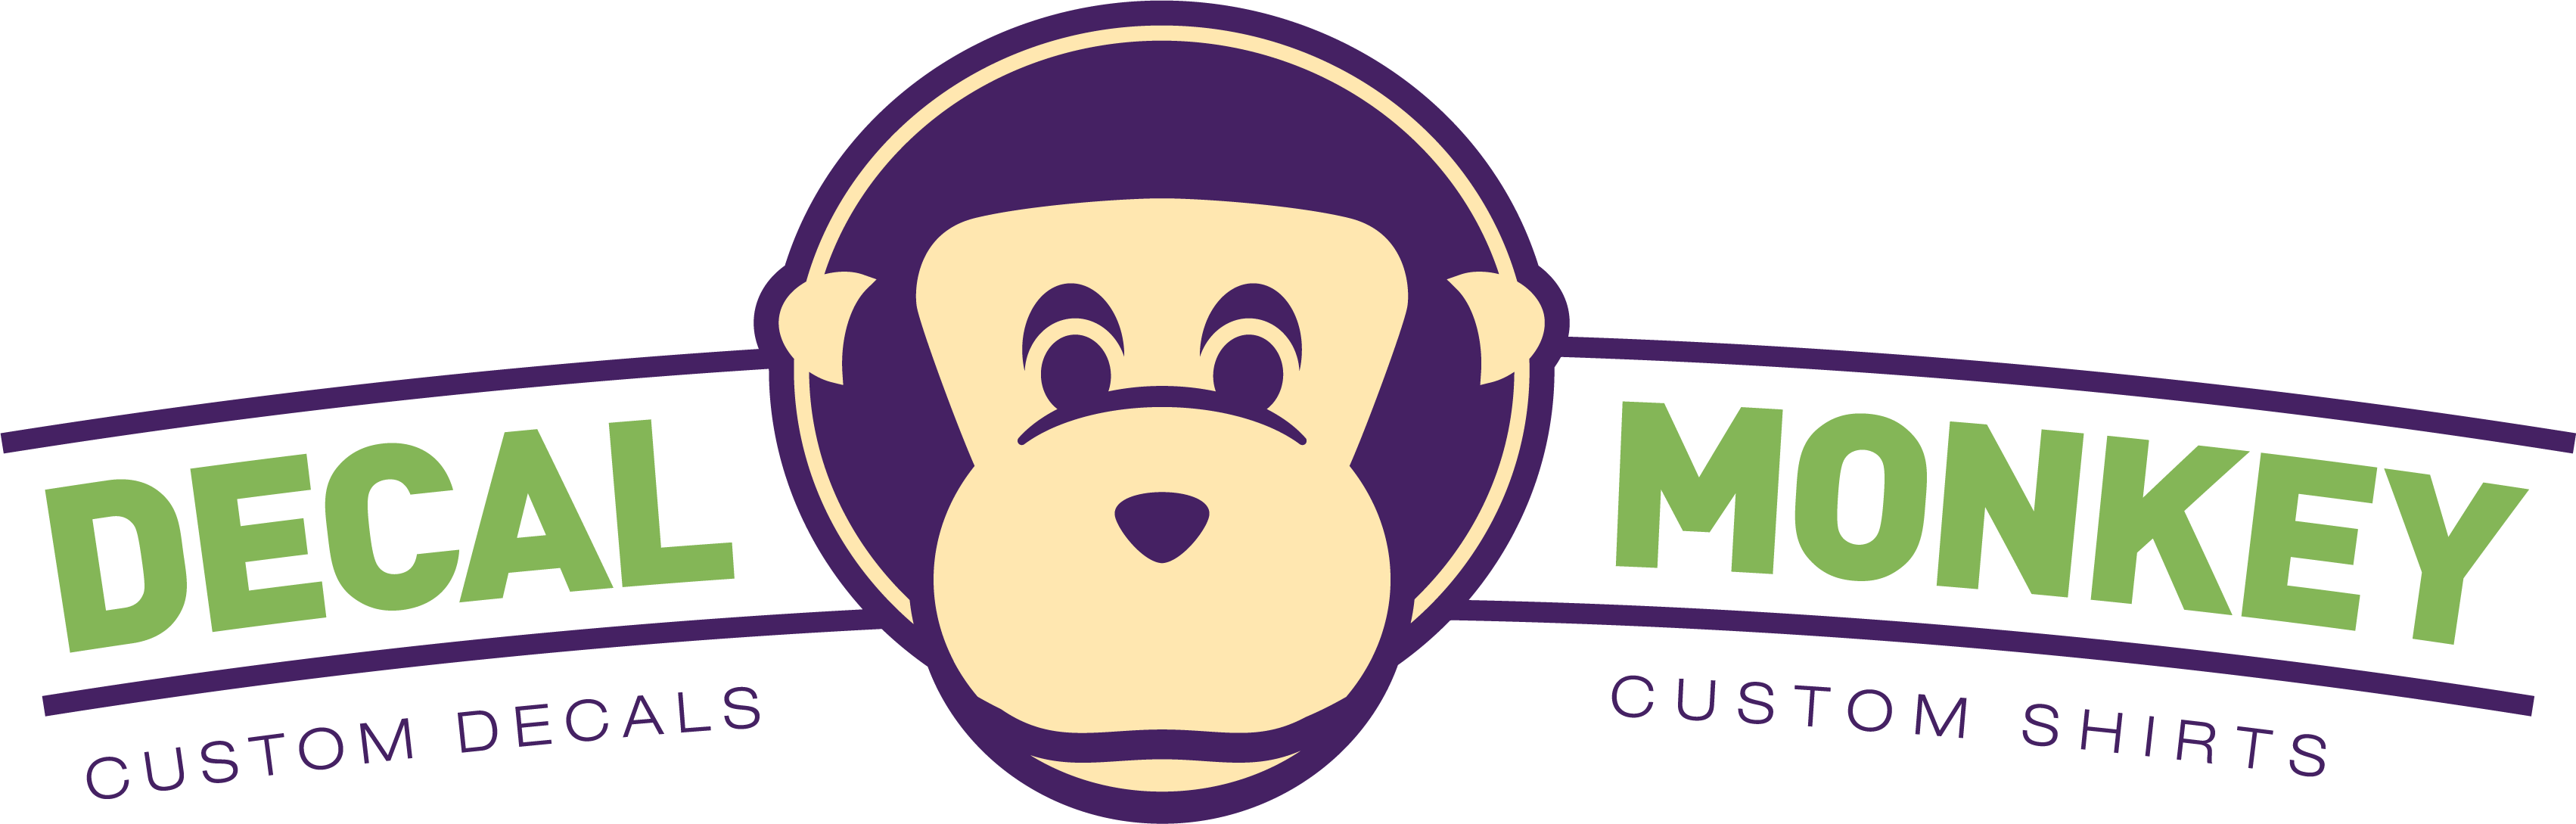 Decal Monkey LLC